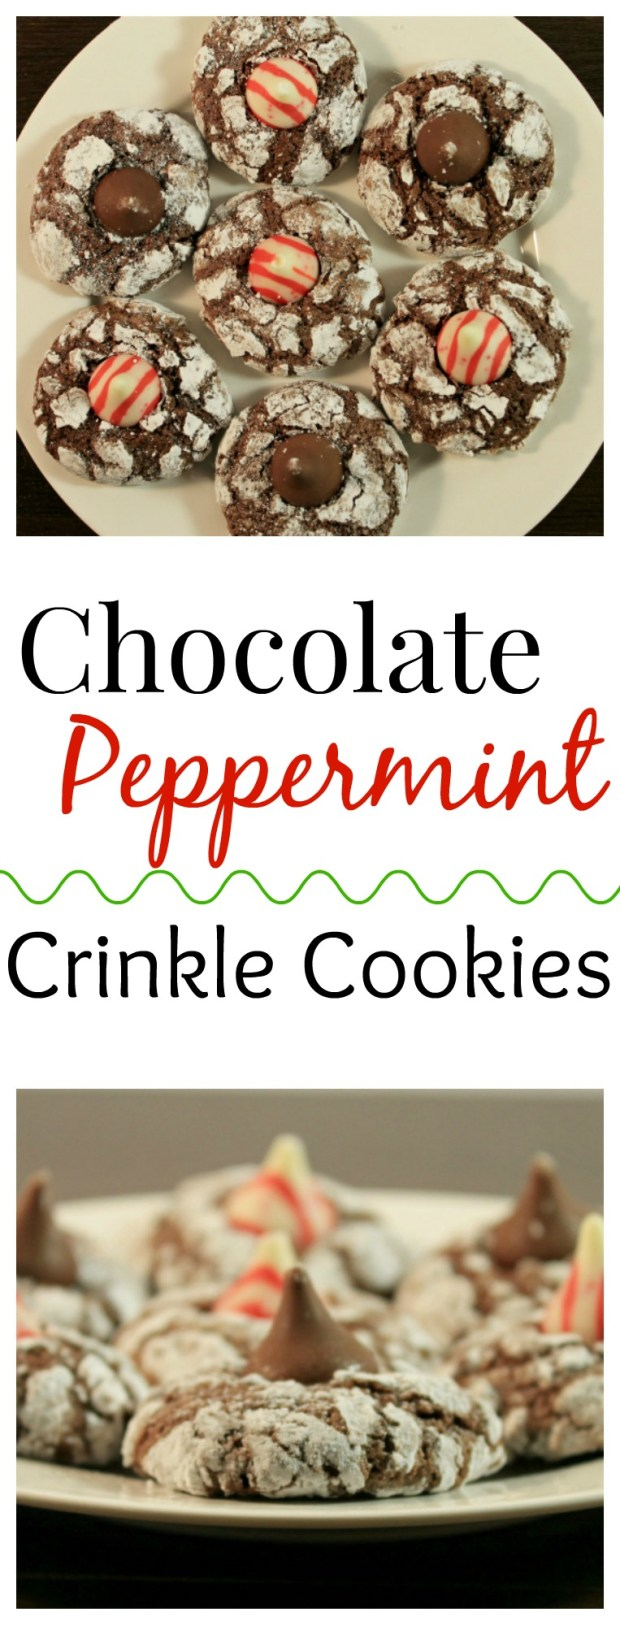 Chocolate Peppermint Crinkle Cookies - a chewy chocolate cookie topped with peppermint kisses!